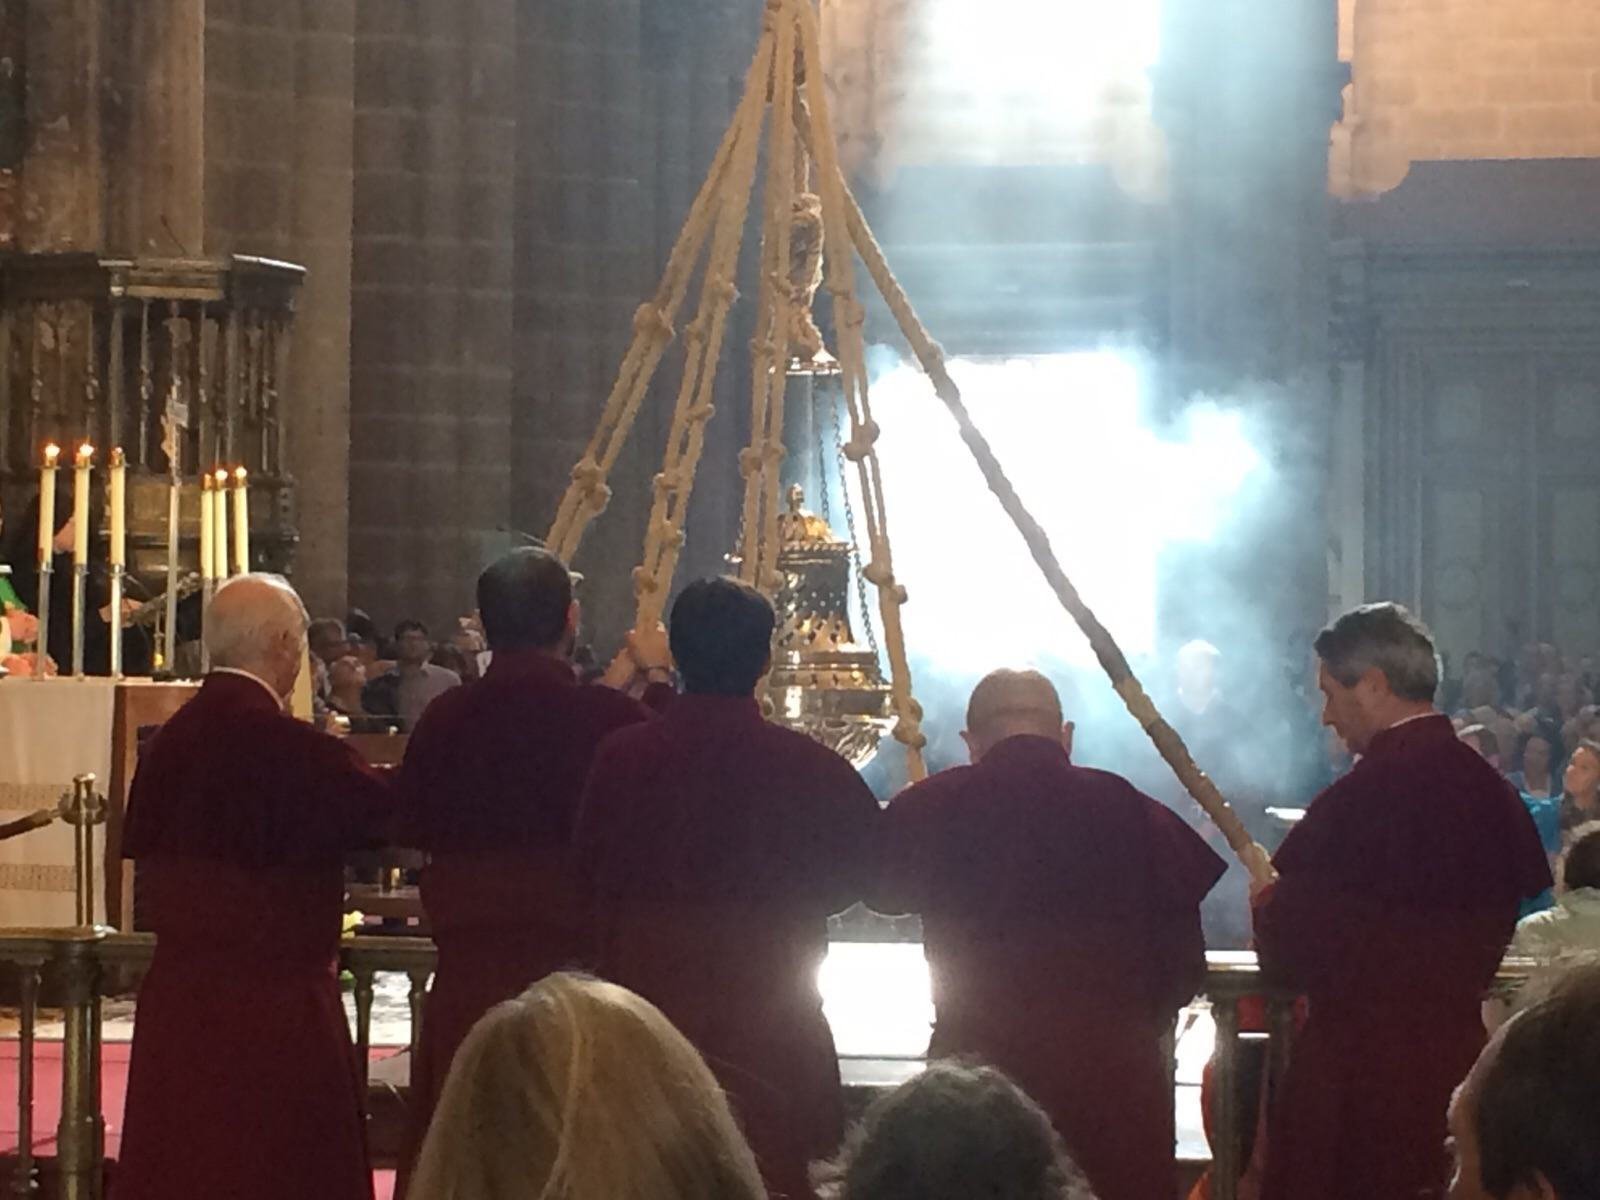 A wonderful welcome in the cathedral